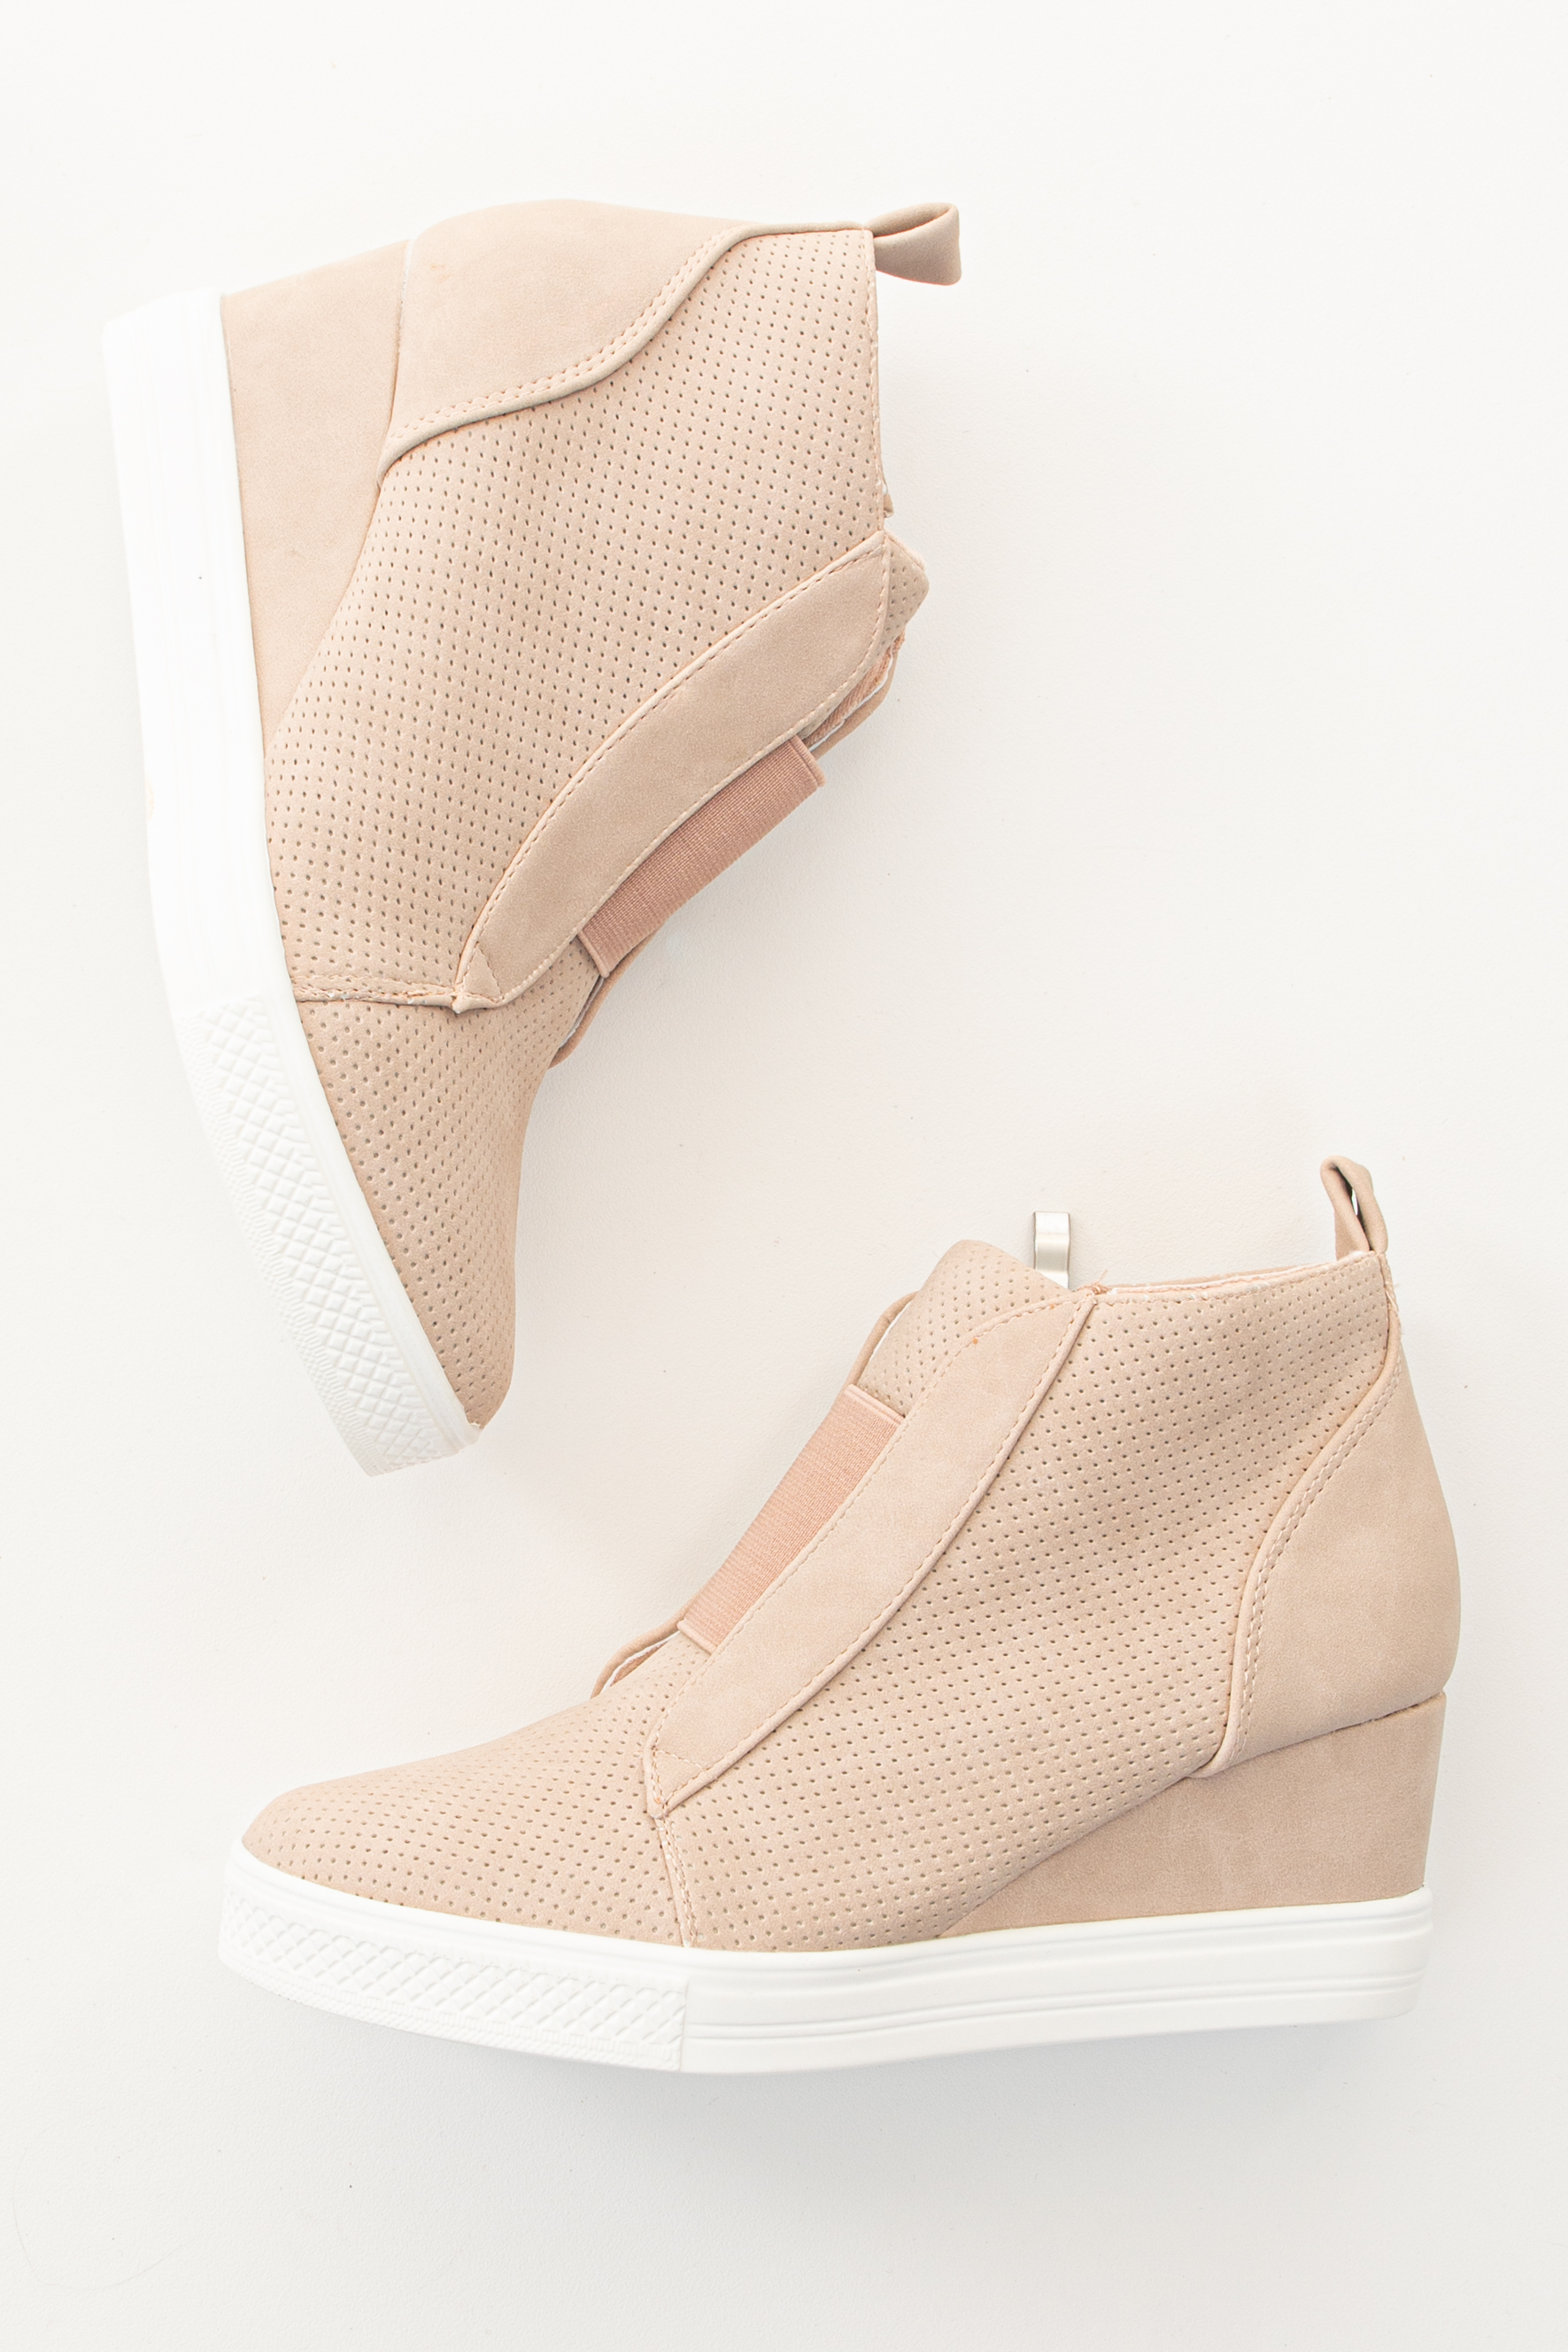 Blush Faux Suede Wedge Sneaker with Zipper